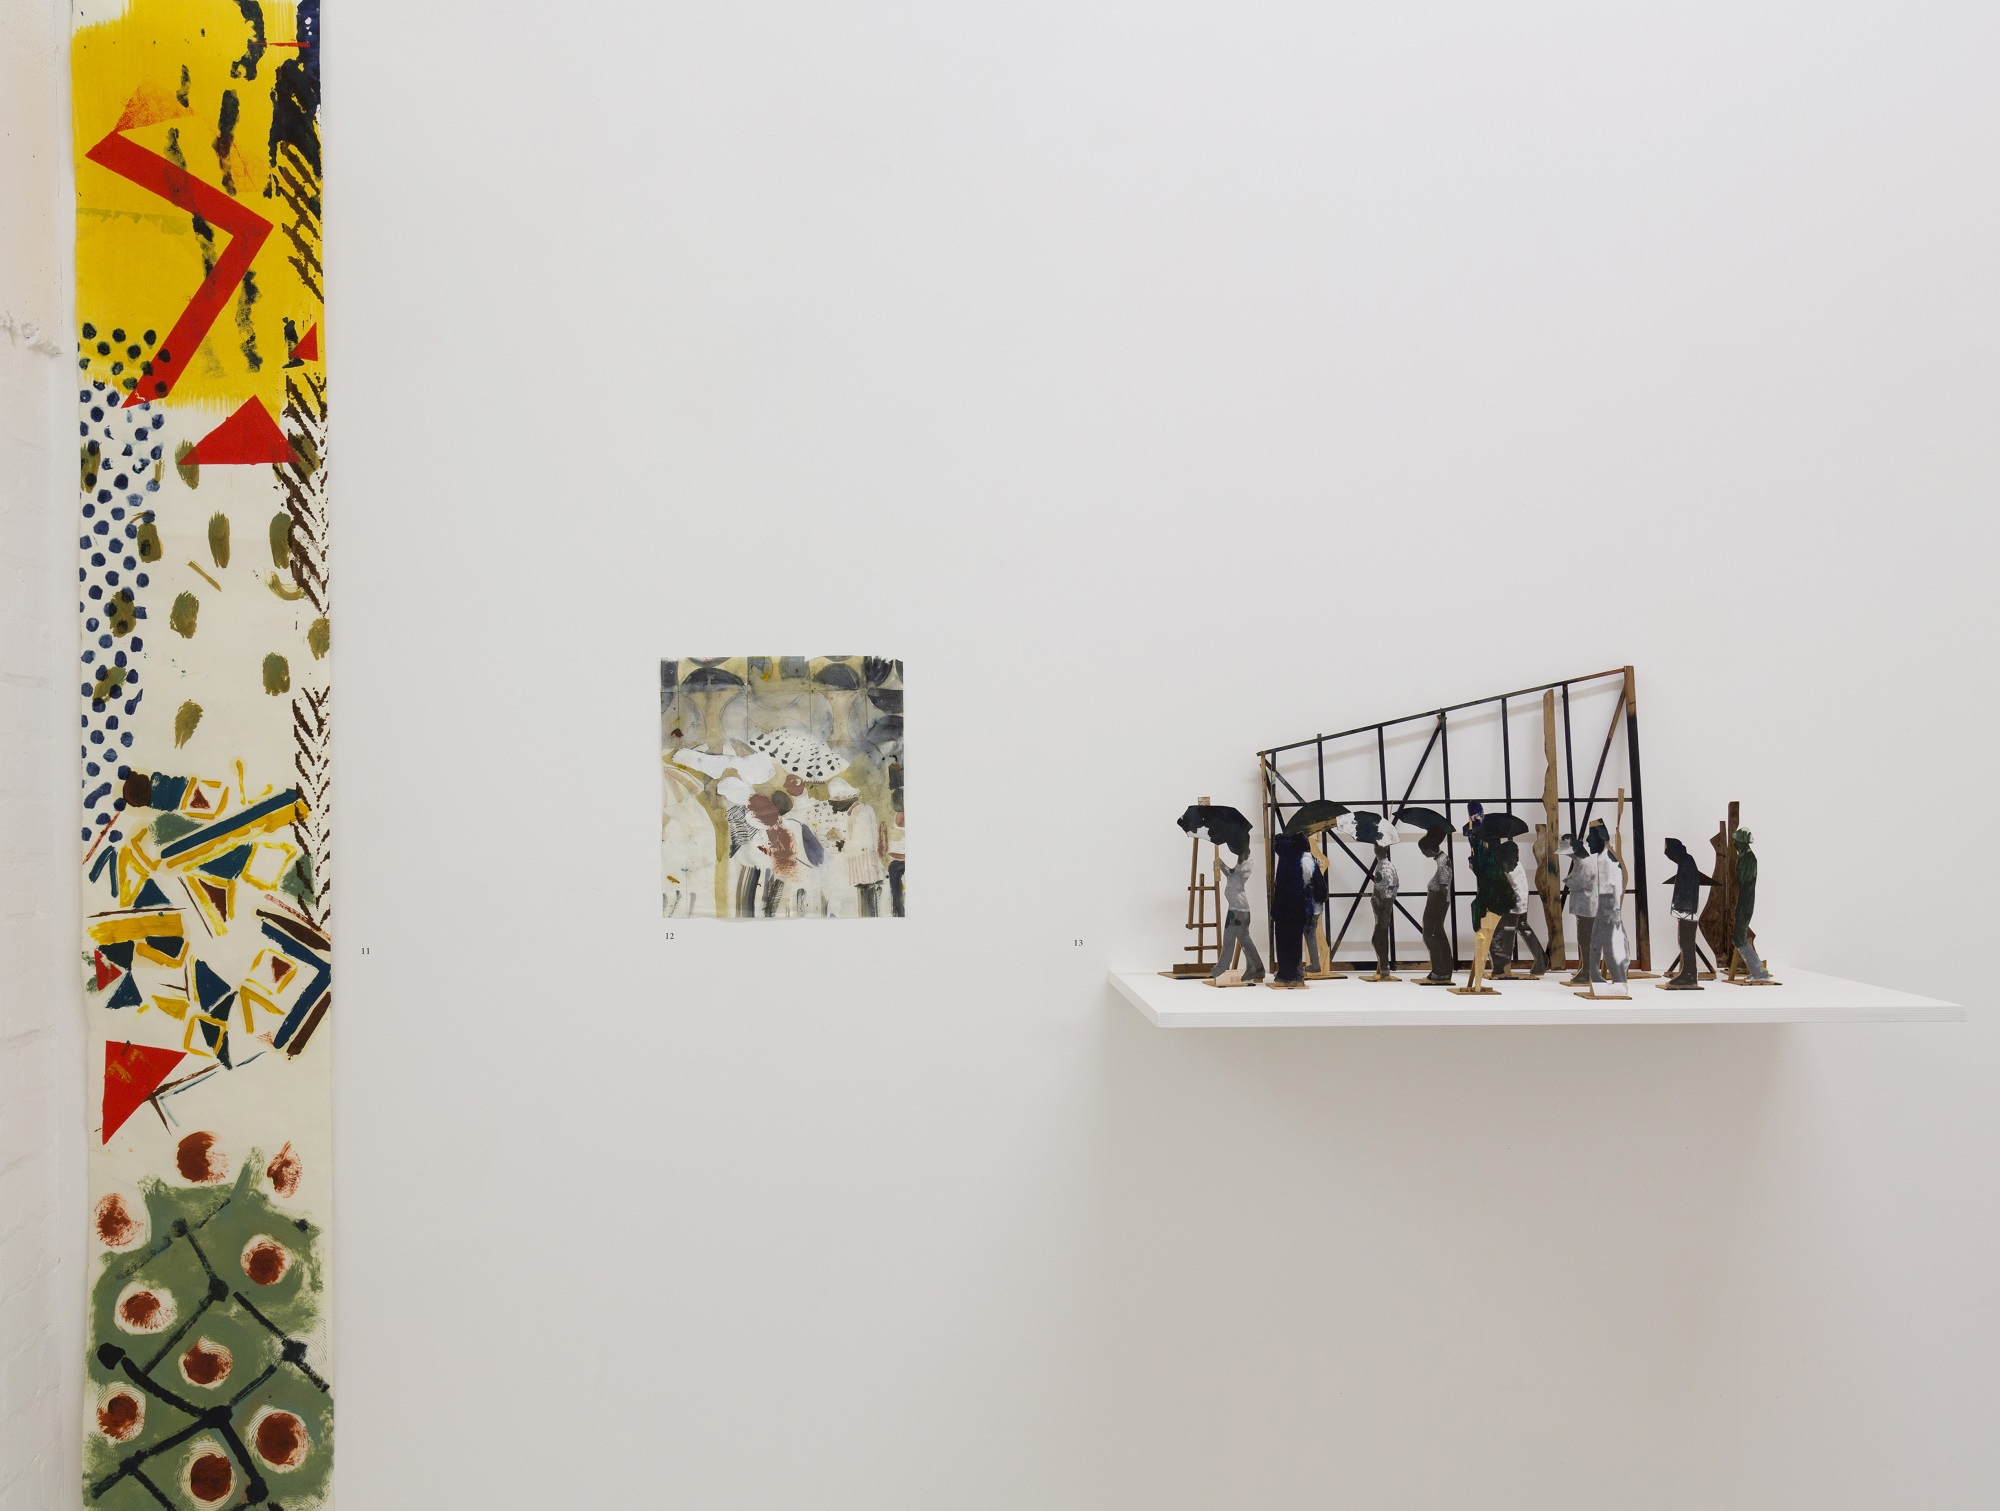 Installation view, Nick Goss, Figure It Out, Tannery Projects, 2017 Photographer: Benjamin Deakin